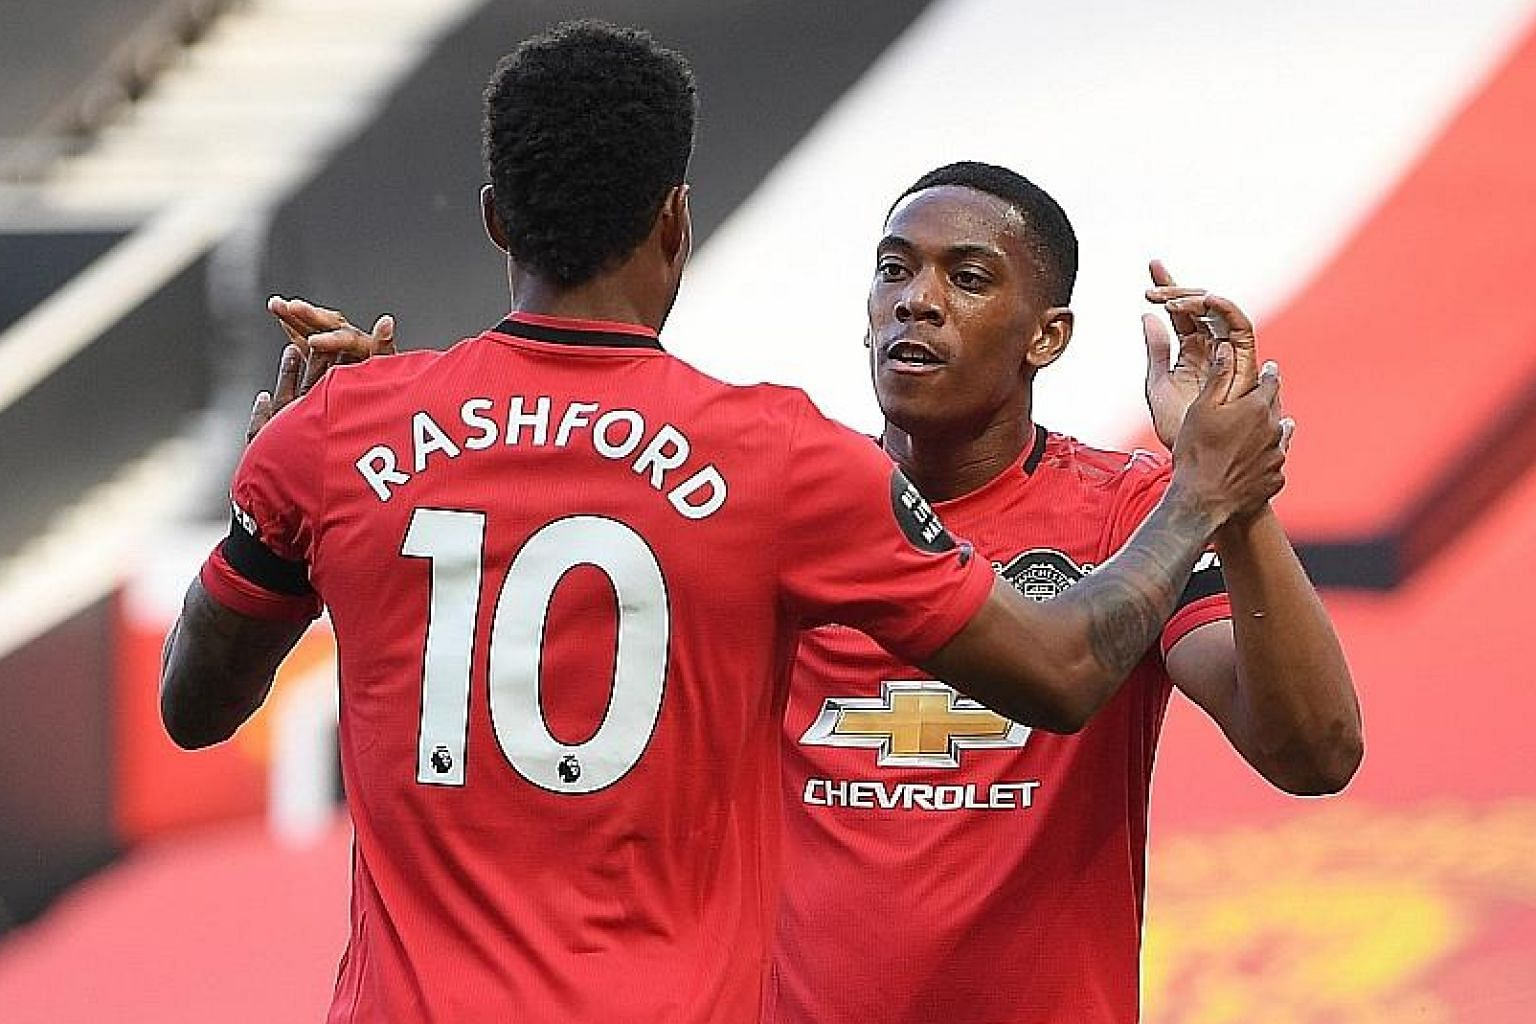 Anthony Martial celebrating with Marcus Rashford after scoring the first of his three goals in Manchester United's 3-0 victory over Sheffield United last month. The duo both scored in last weekend's 5-2 win over Bournemouth. PHOTO: EPA-EFE